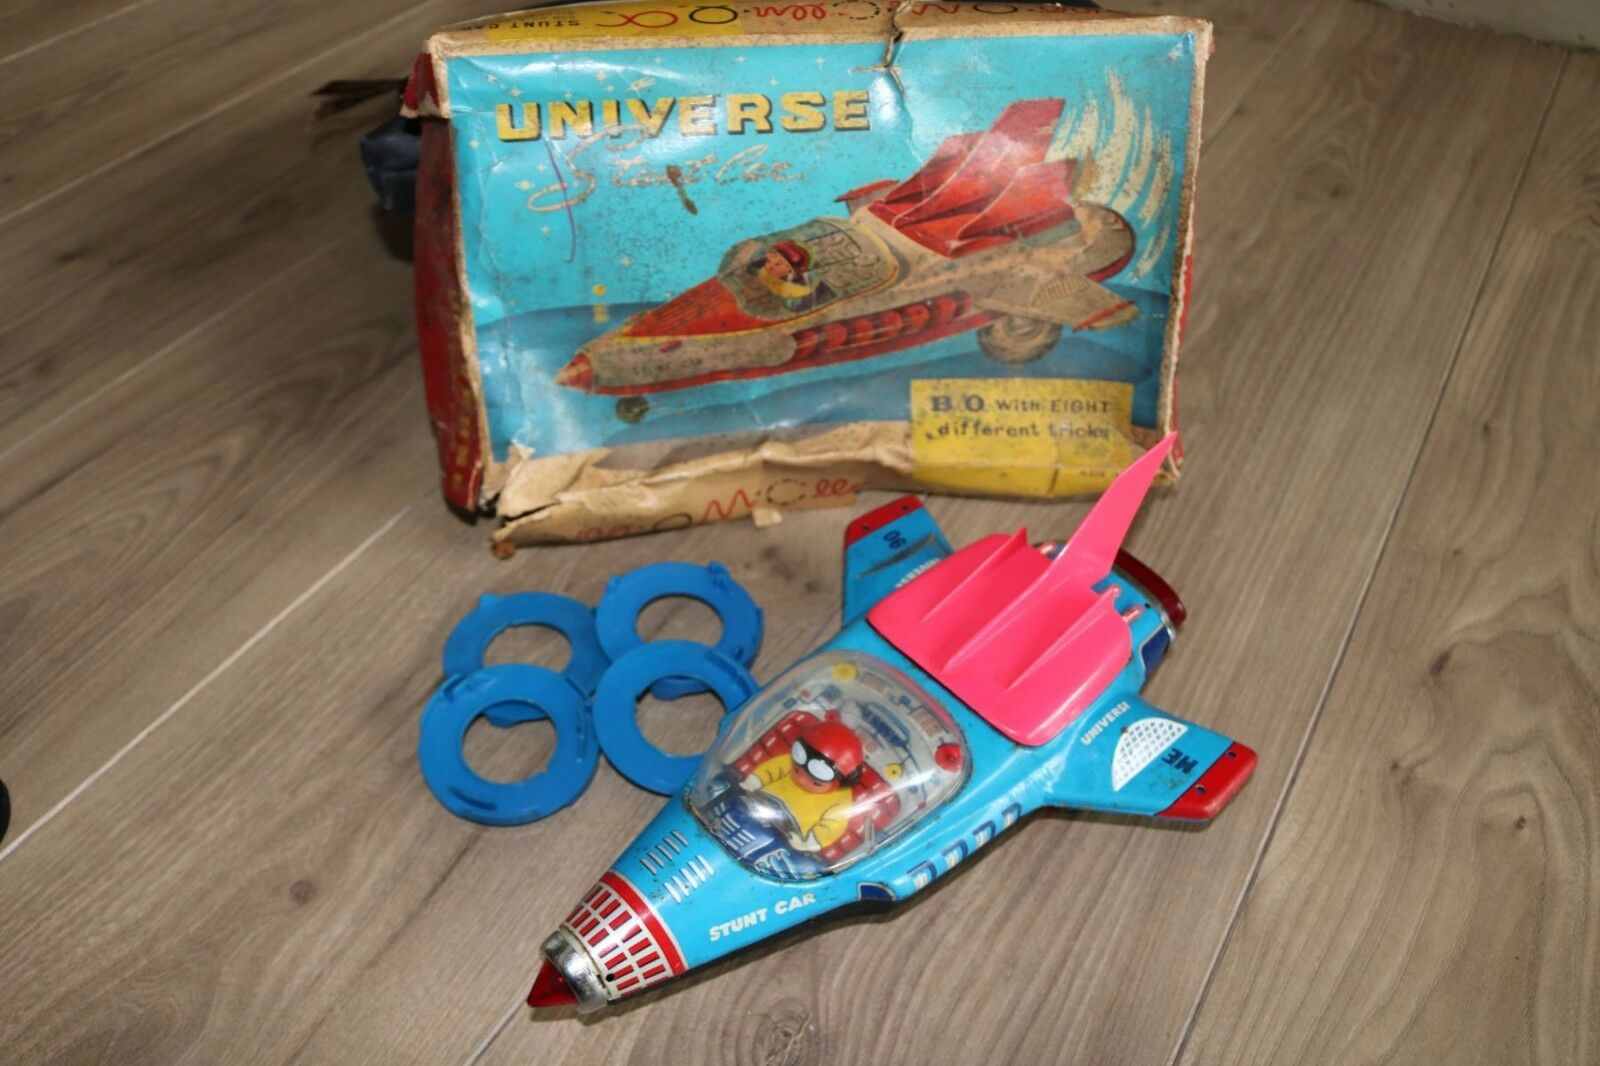 Universe Stunt Car ME 090 in working condition in box